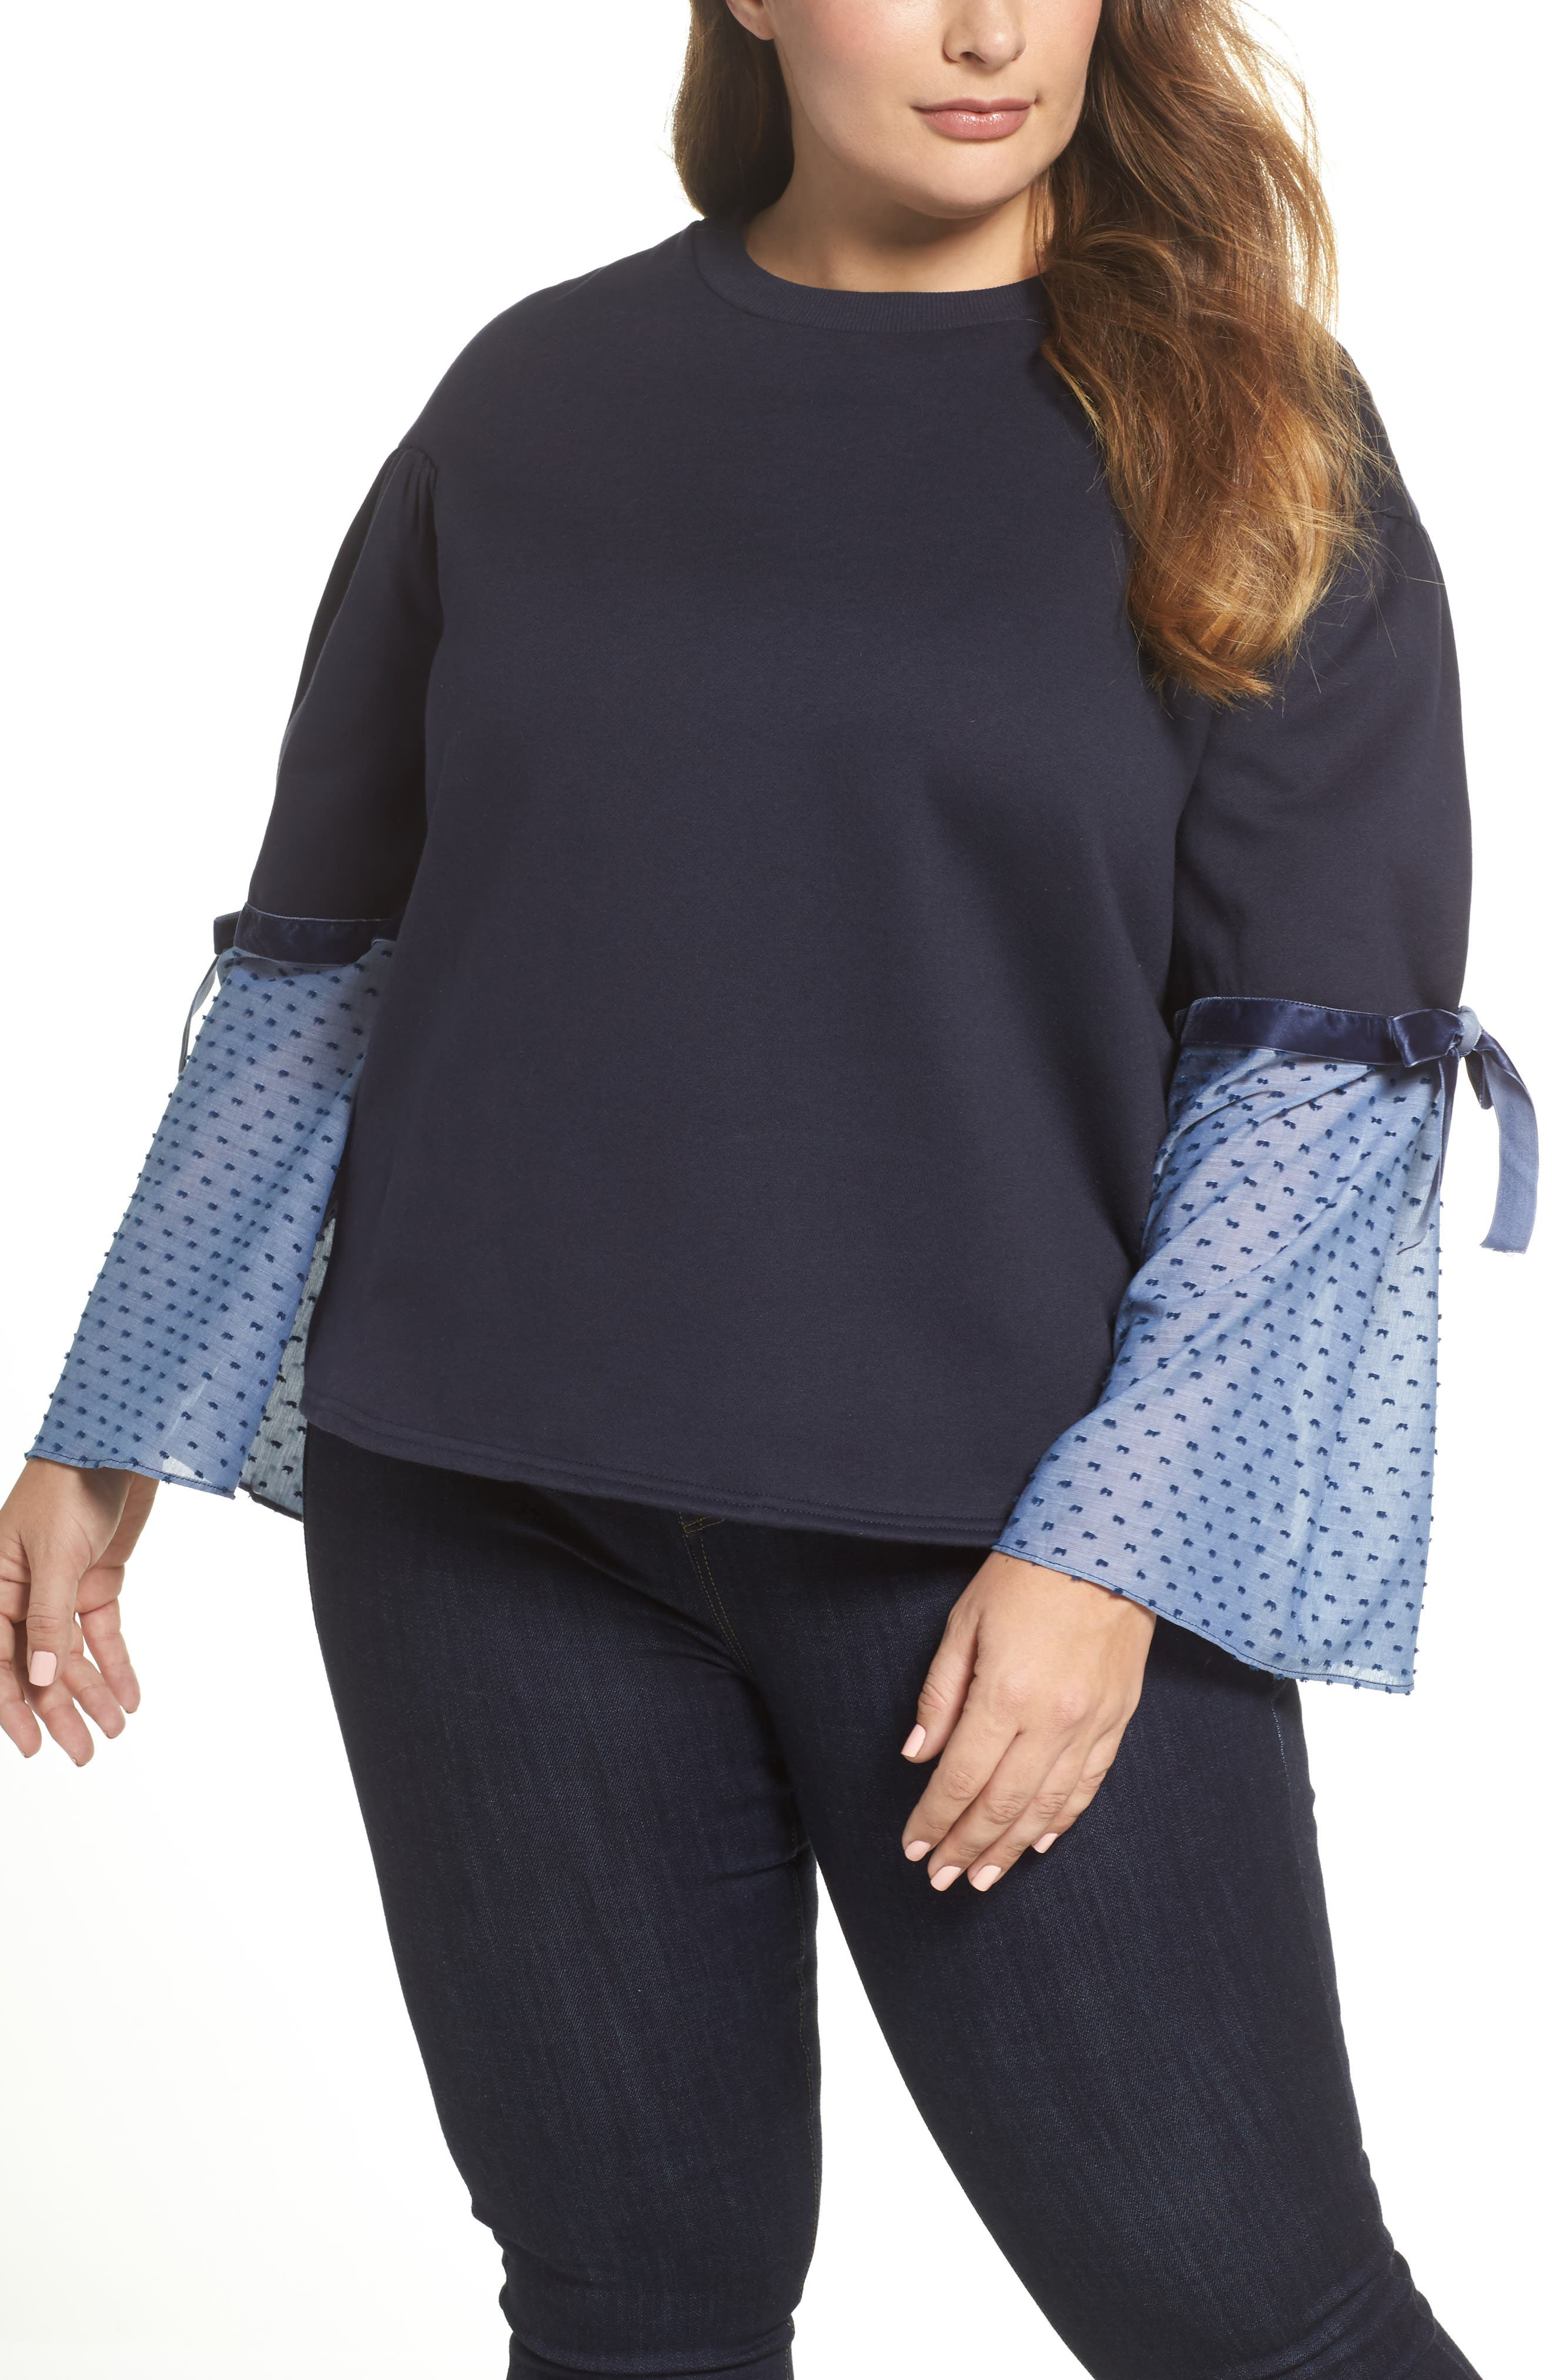 Sweatshirt with Woven Tie Sleeves,                             Main thumbnail 1, color,                             410